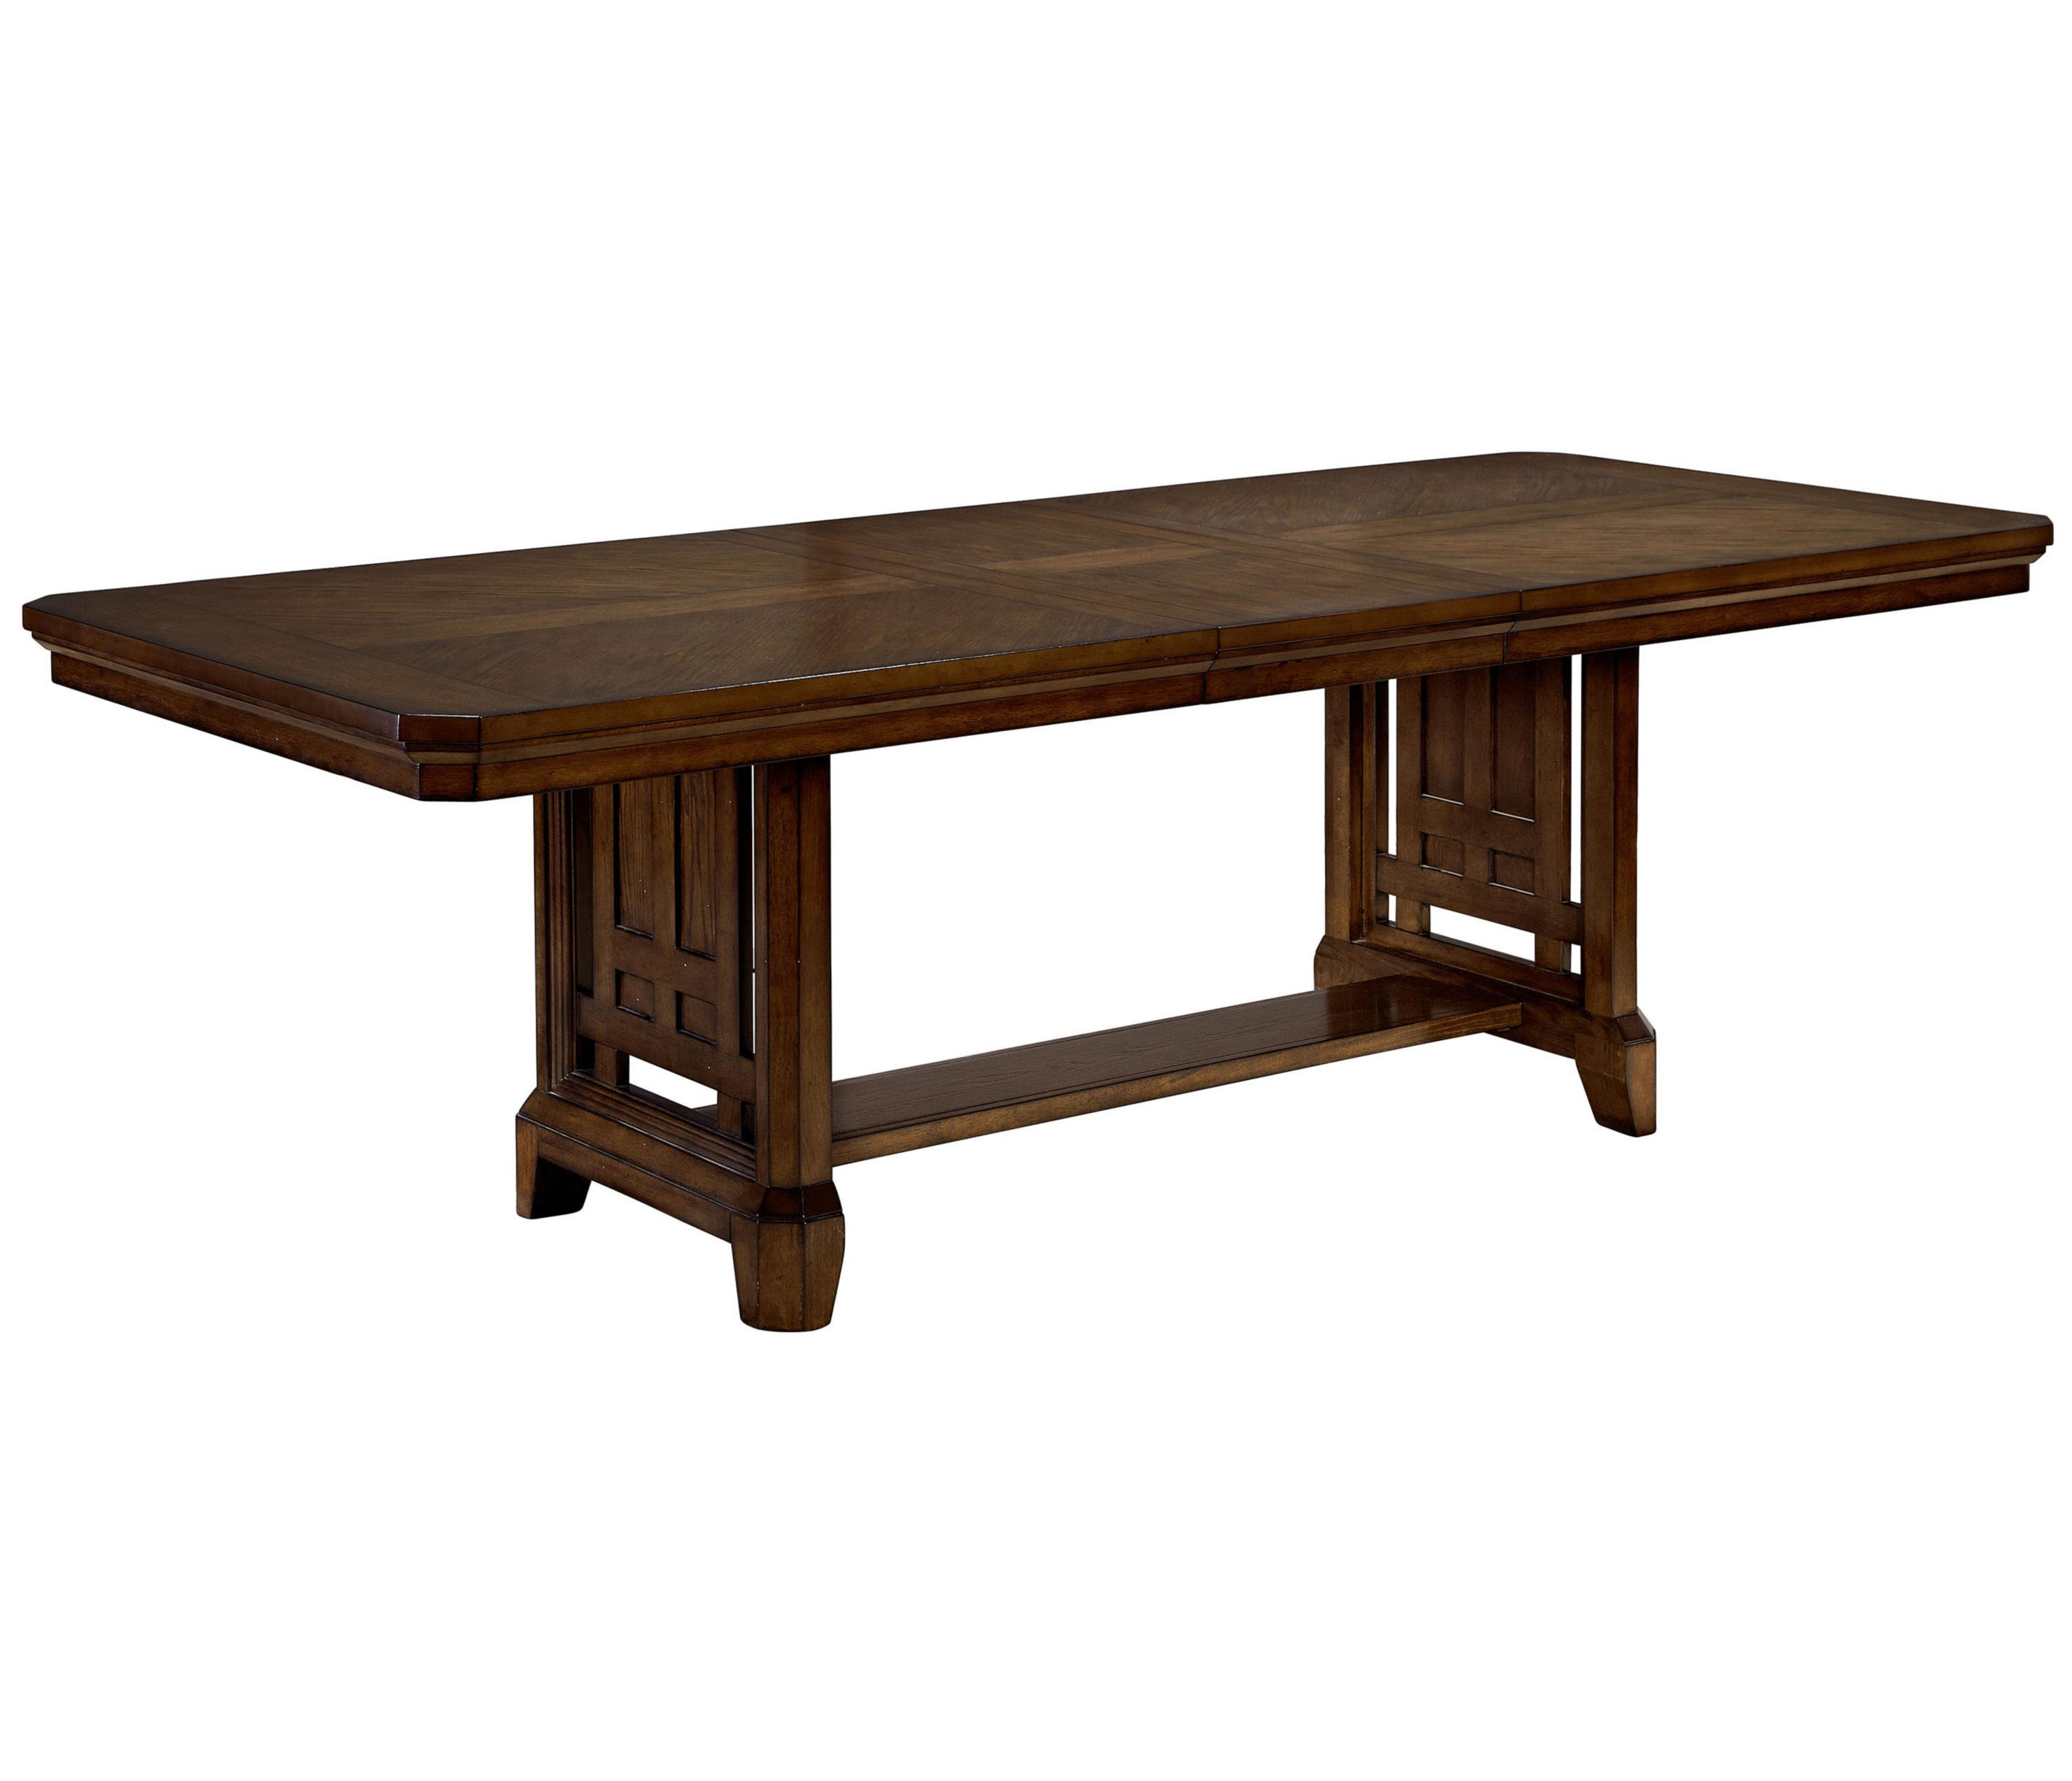 Broyhill Furniture Estes Park Trestle Table - Item Number: 4364-553+31